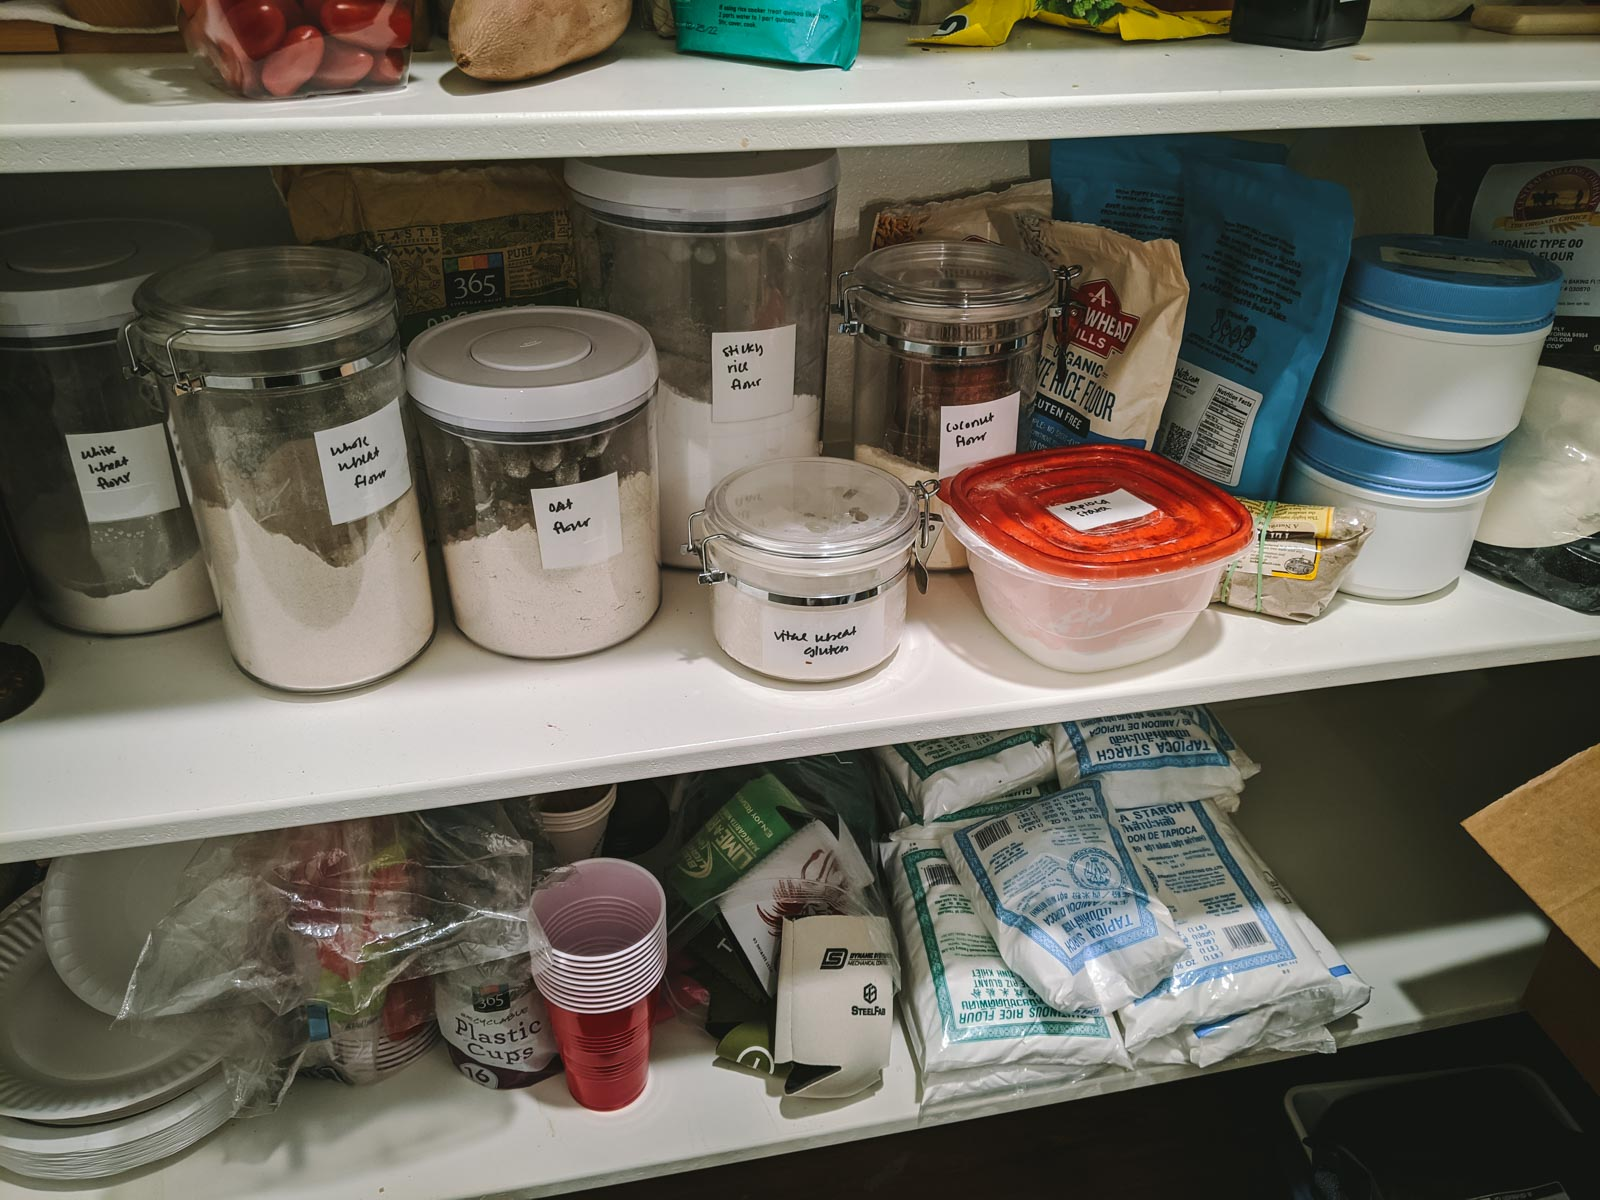 My pantry. I count 15 different types of flour.